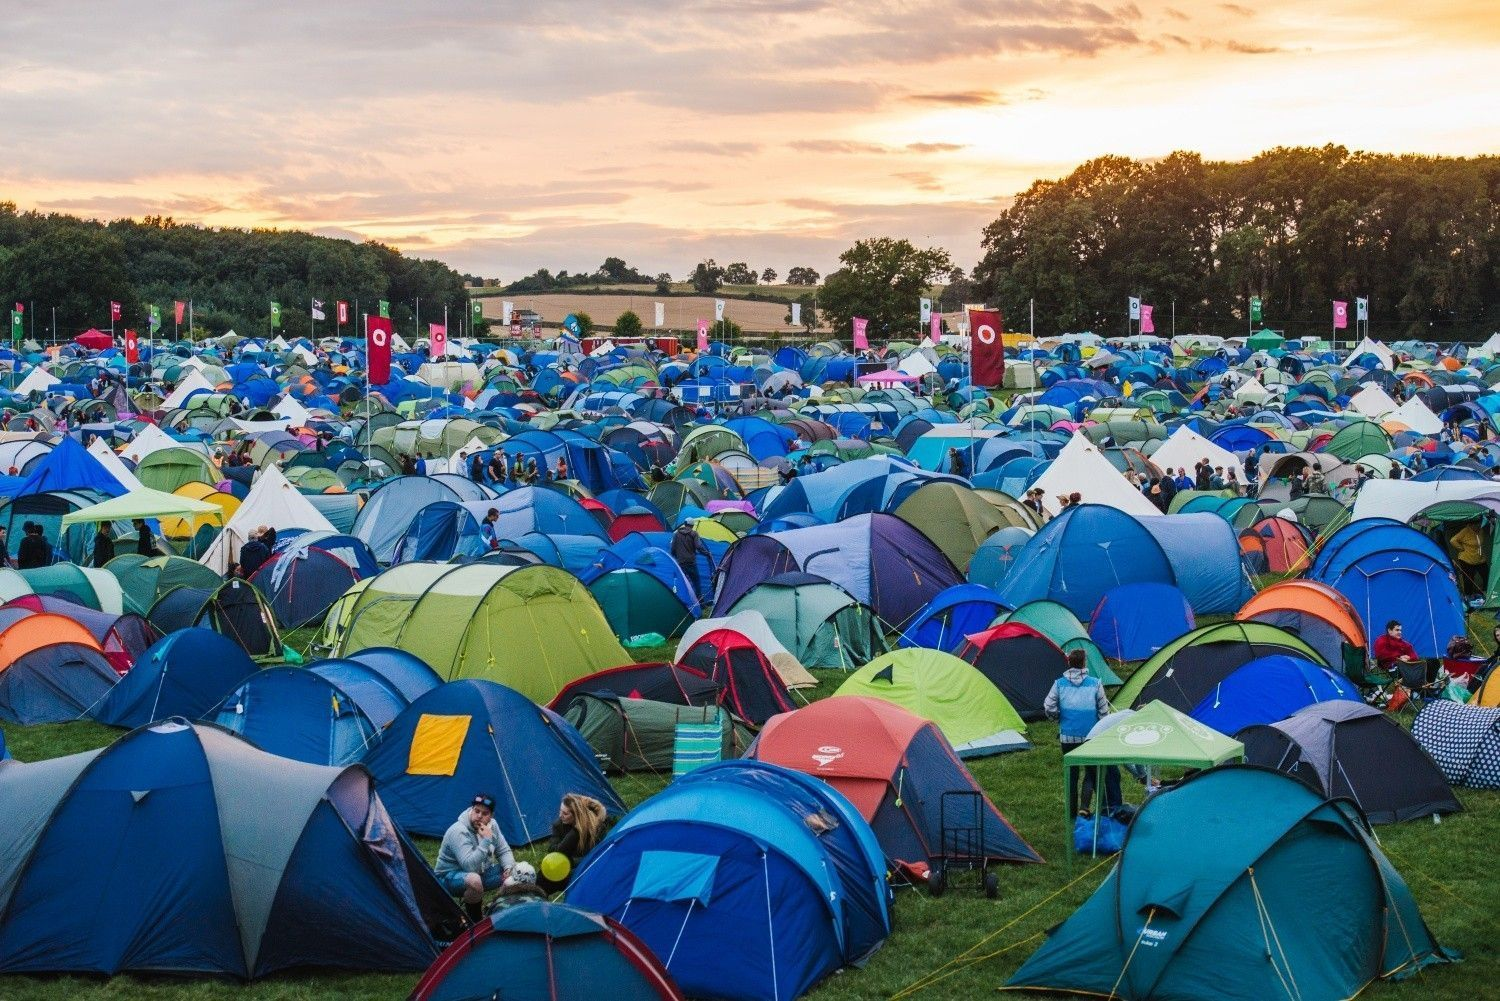 Finding the Best Festival Tent for Your Needs